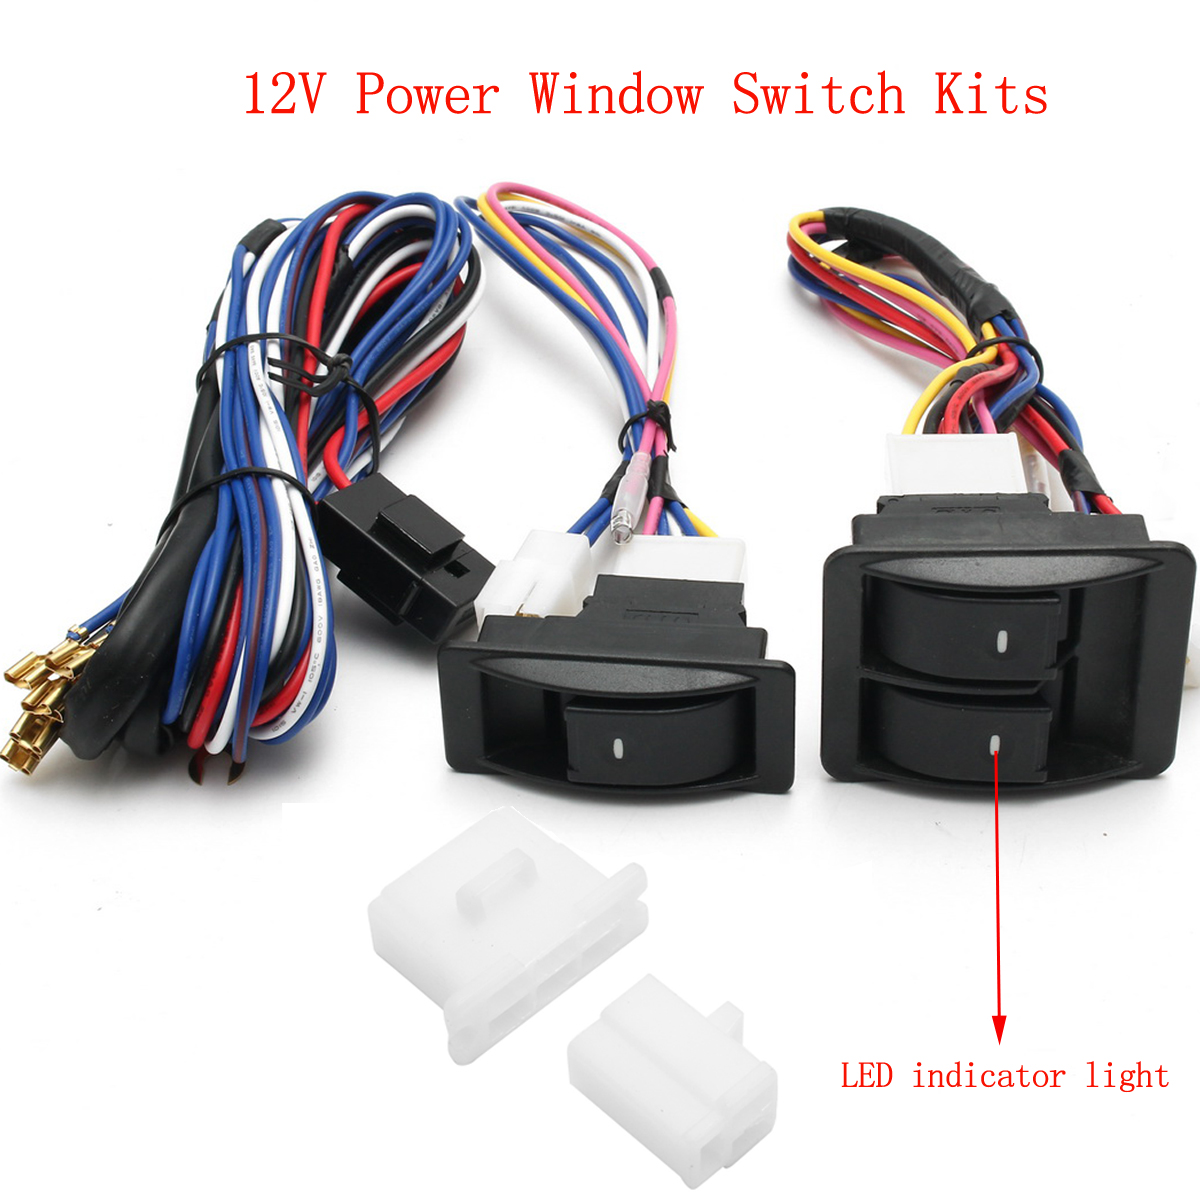 6pcs 12v Universal Power Window Switch Kits With Installation Wiring Harness on universal power window wiring diagram for 4 doors